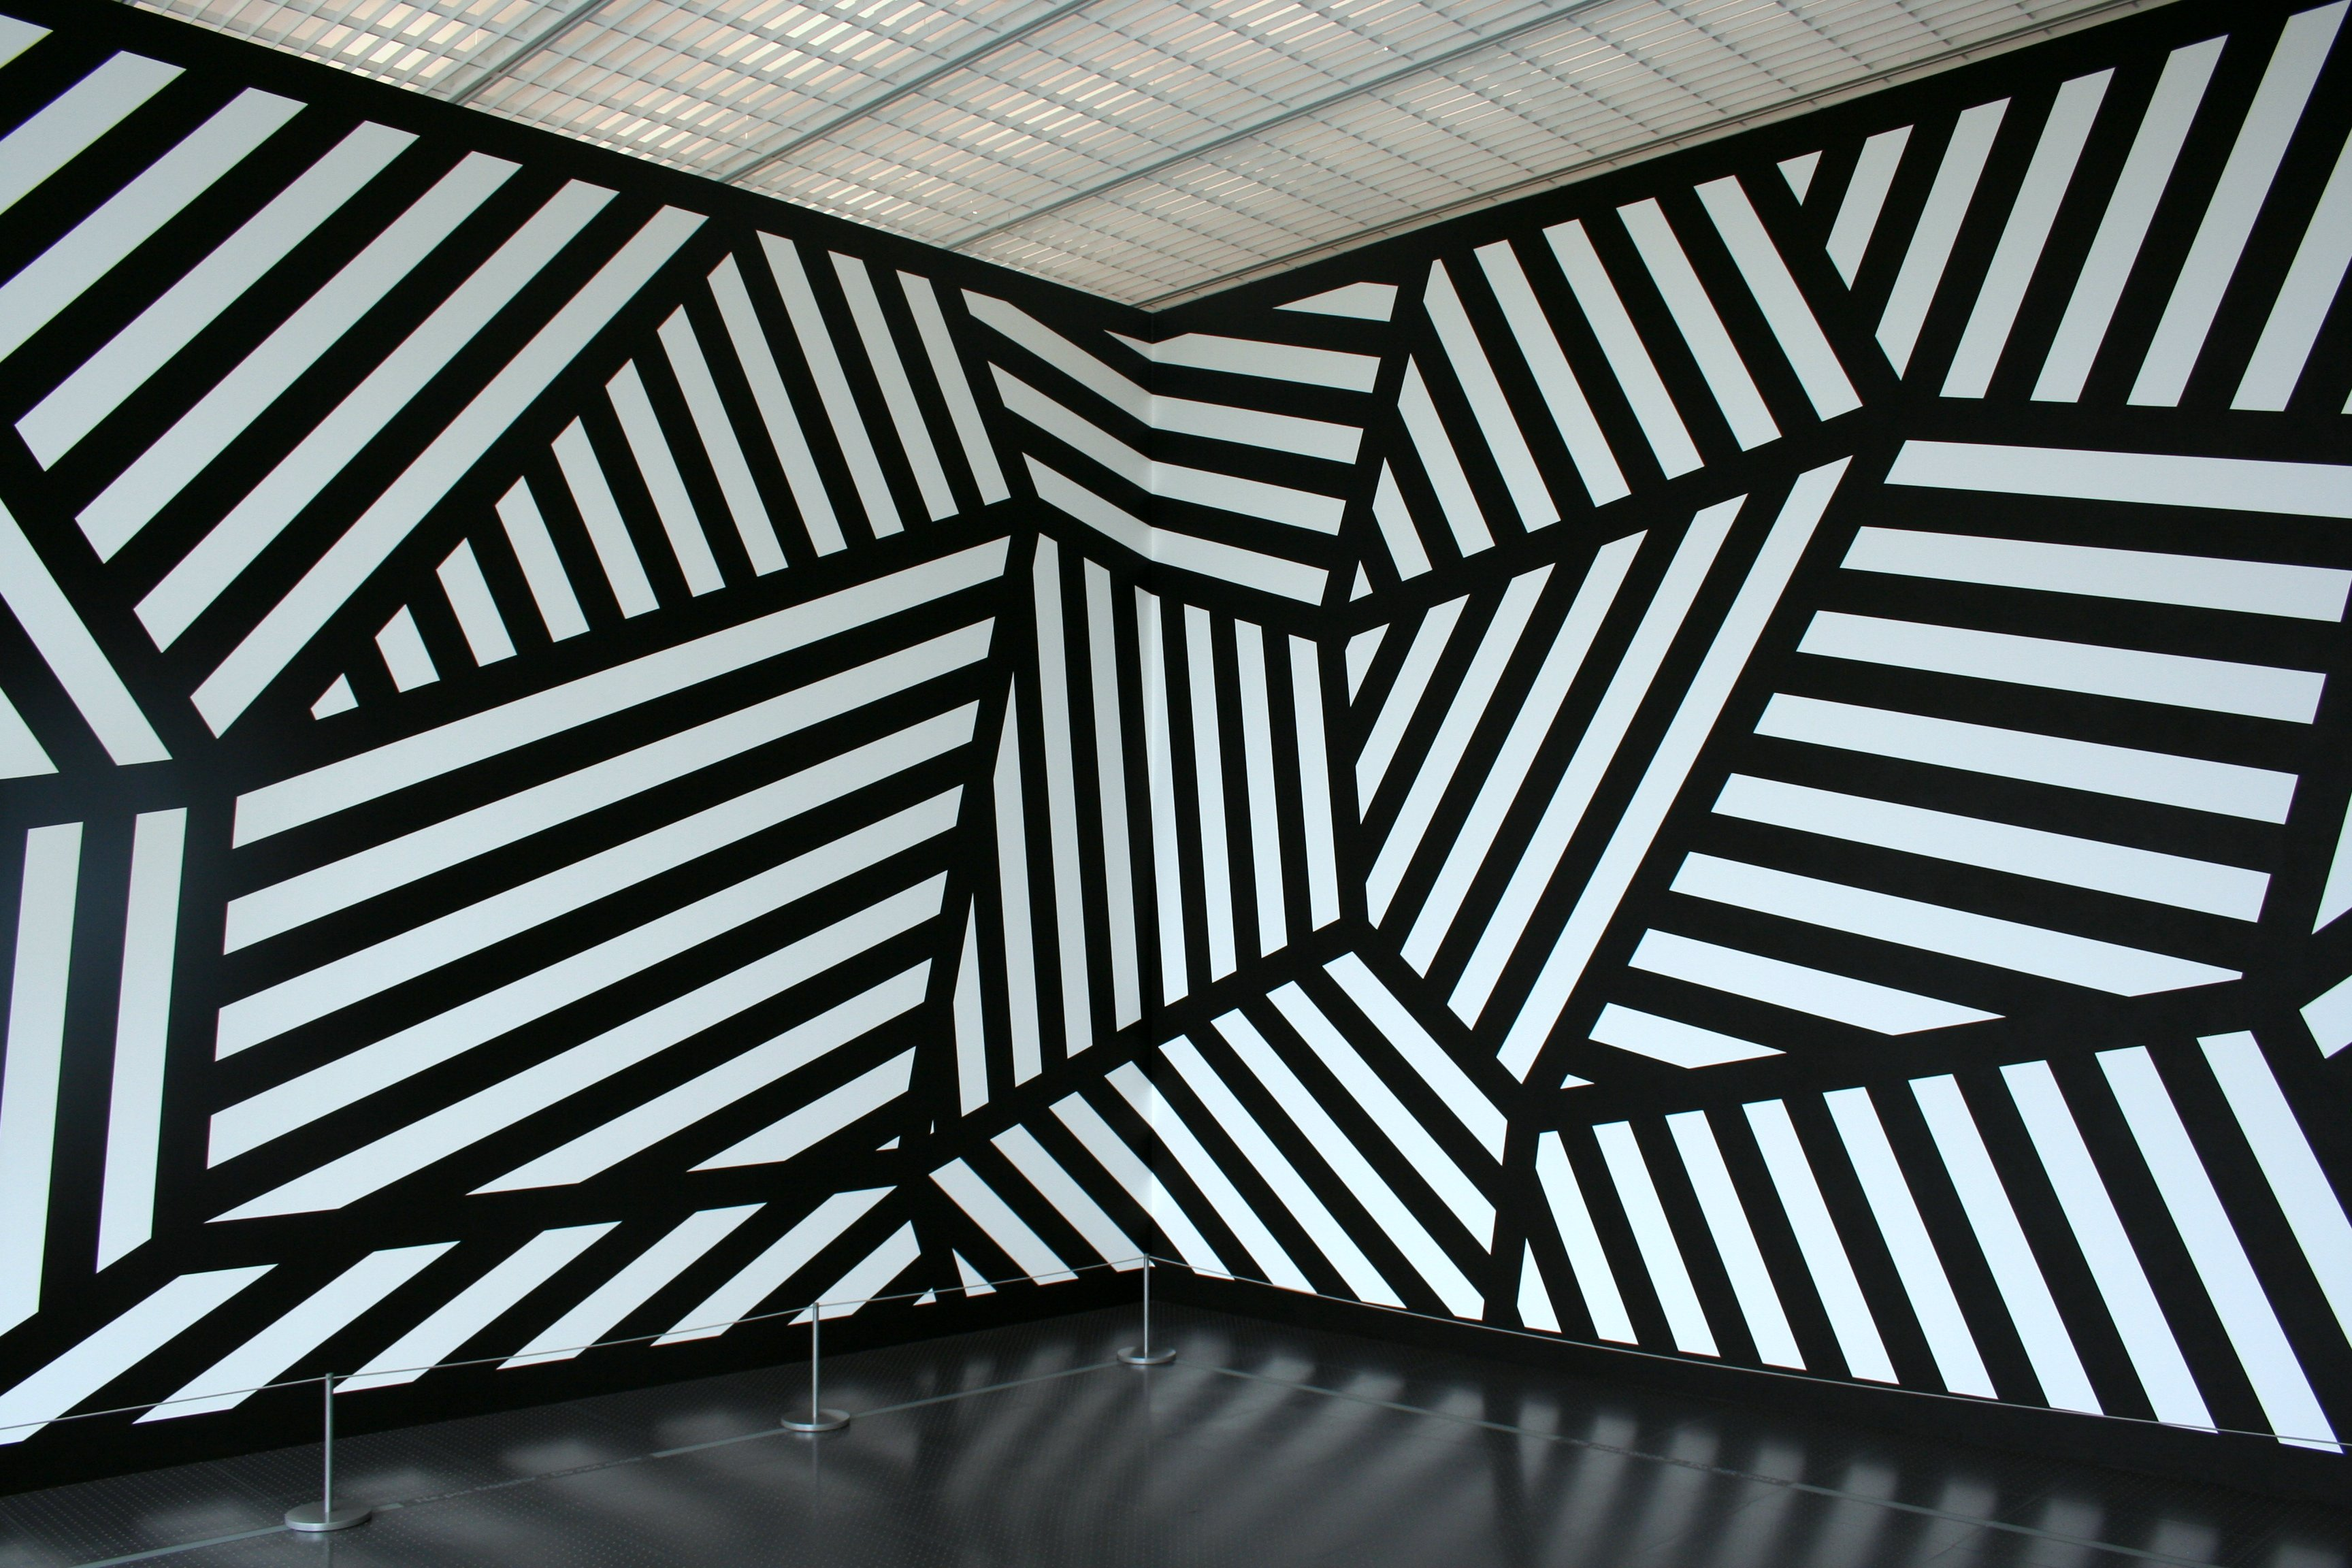 Day thirty five sol lewitt simple forms day of the artist for Minimal art sol lewitt